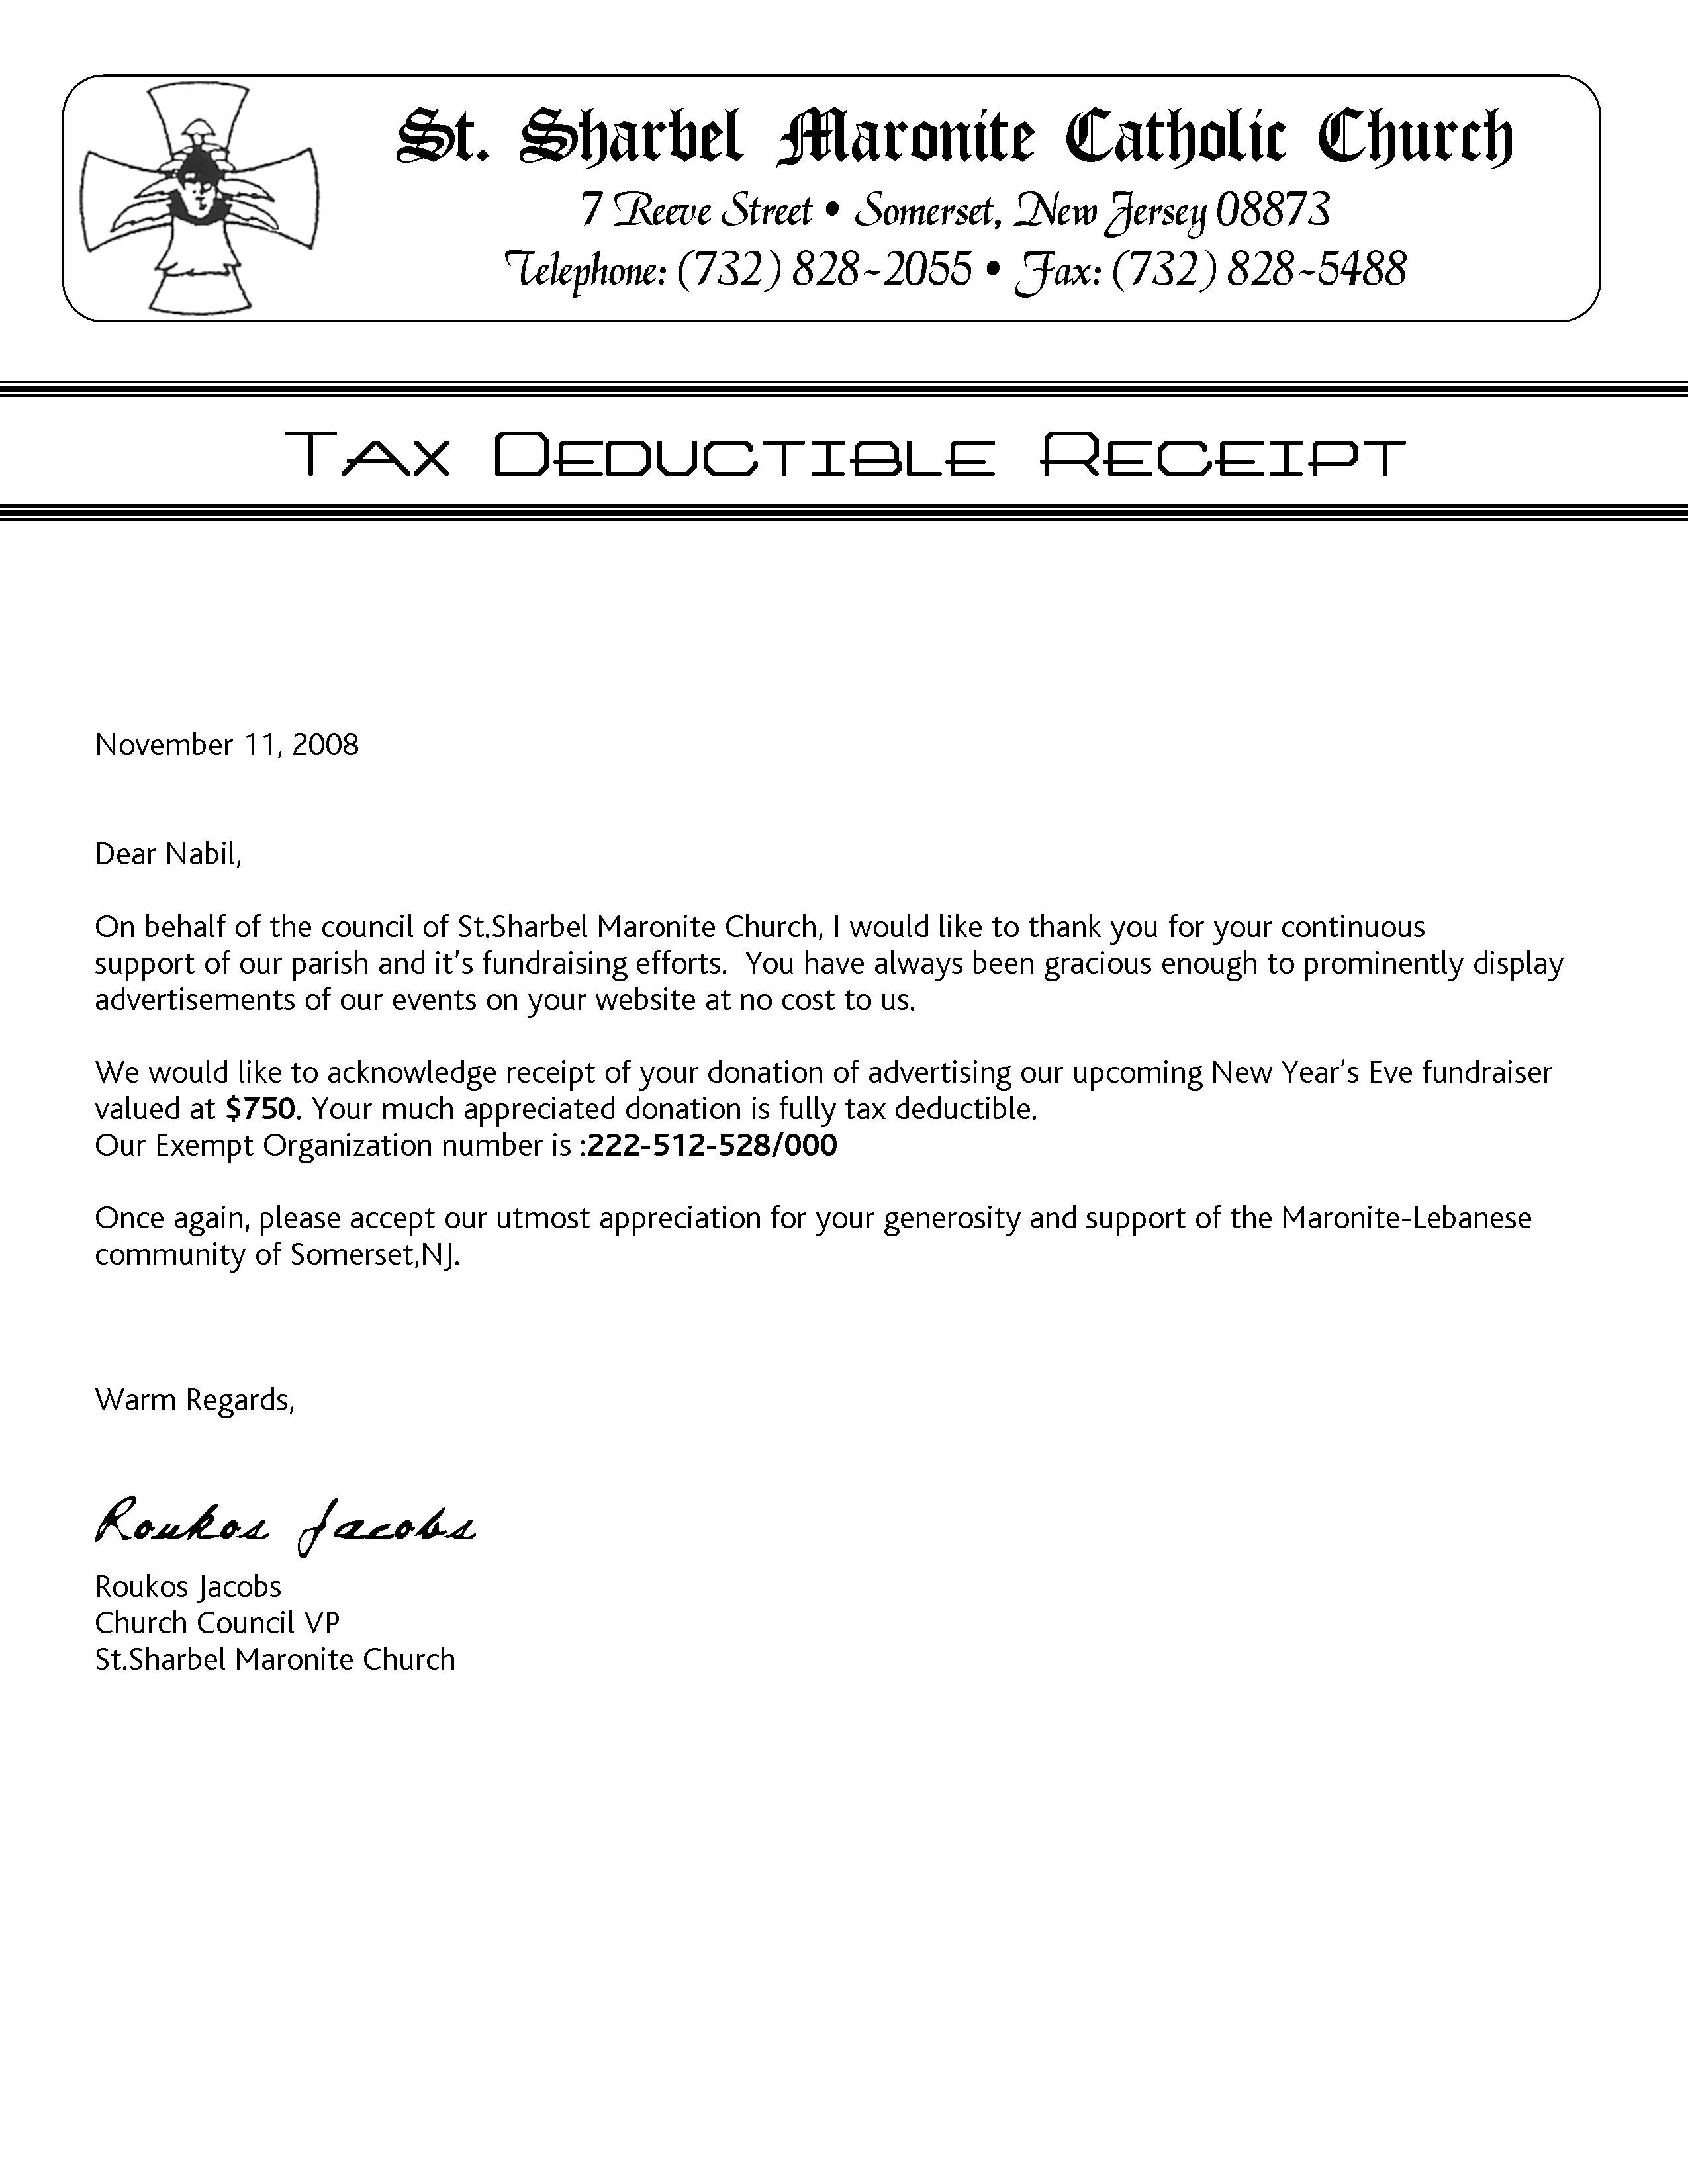 Donation Letter Template for Tax Purposes - Tax Deductible Donation form Template